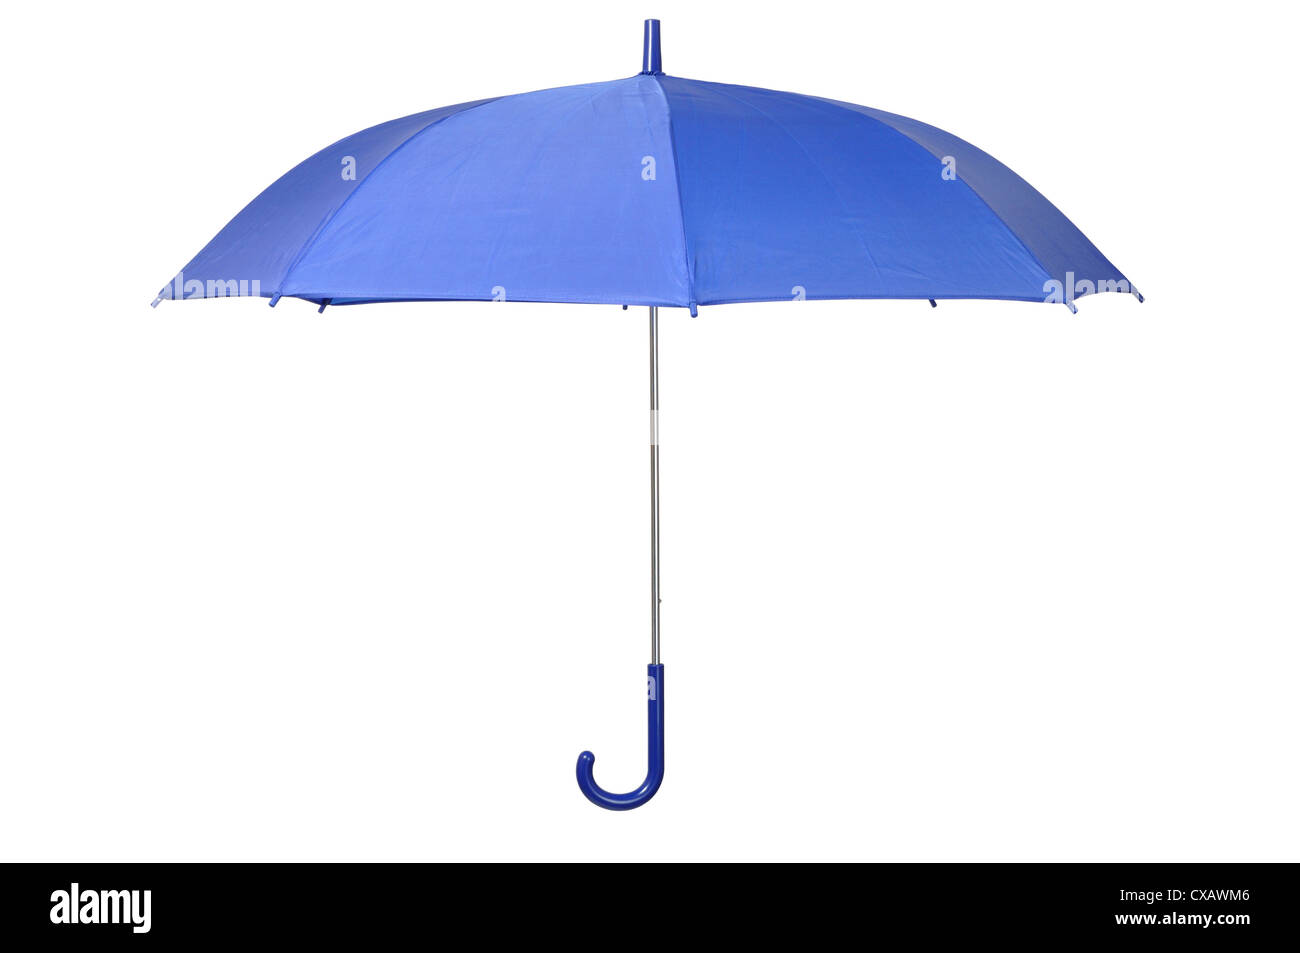 Open blue umbrella isolated on white background - Stock Image